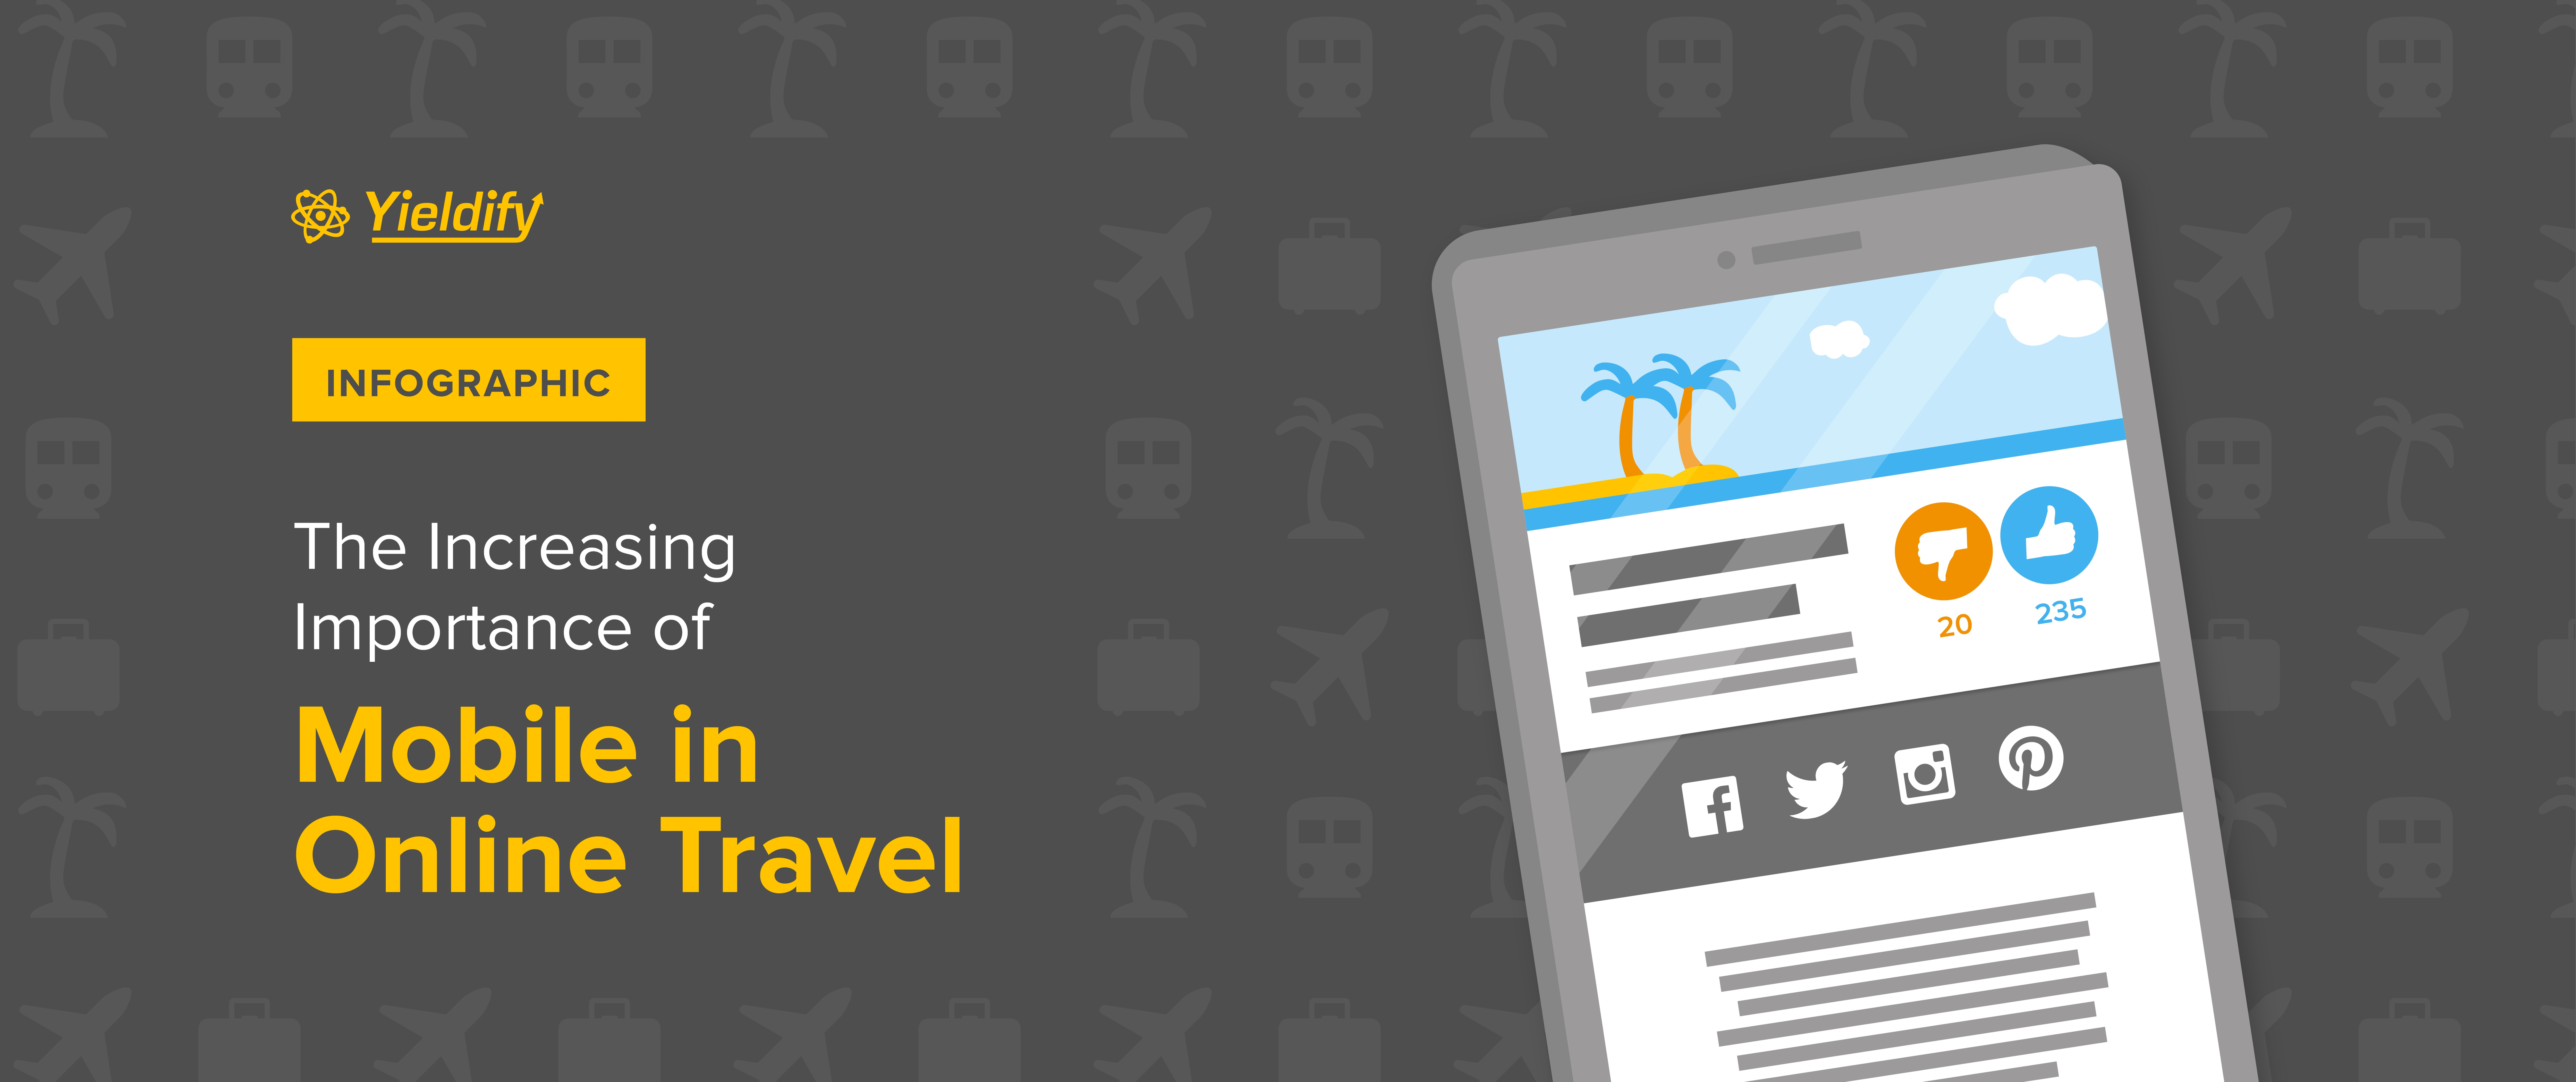 Importance of mobile in online travel